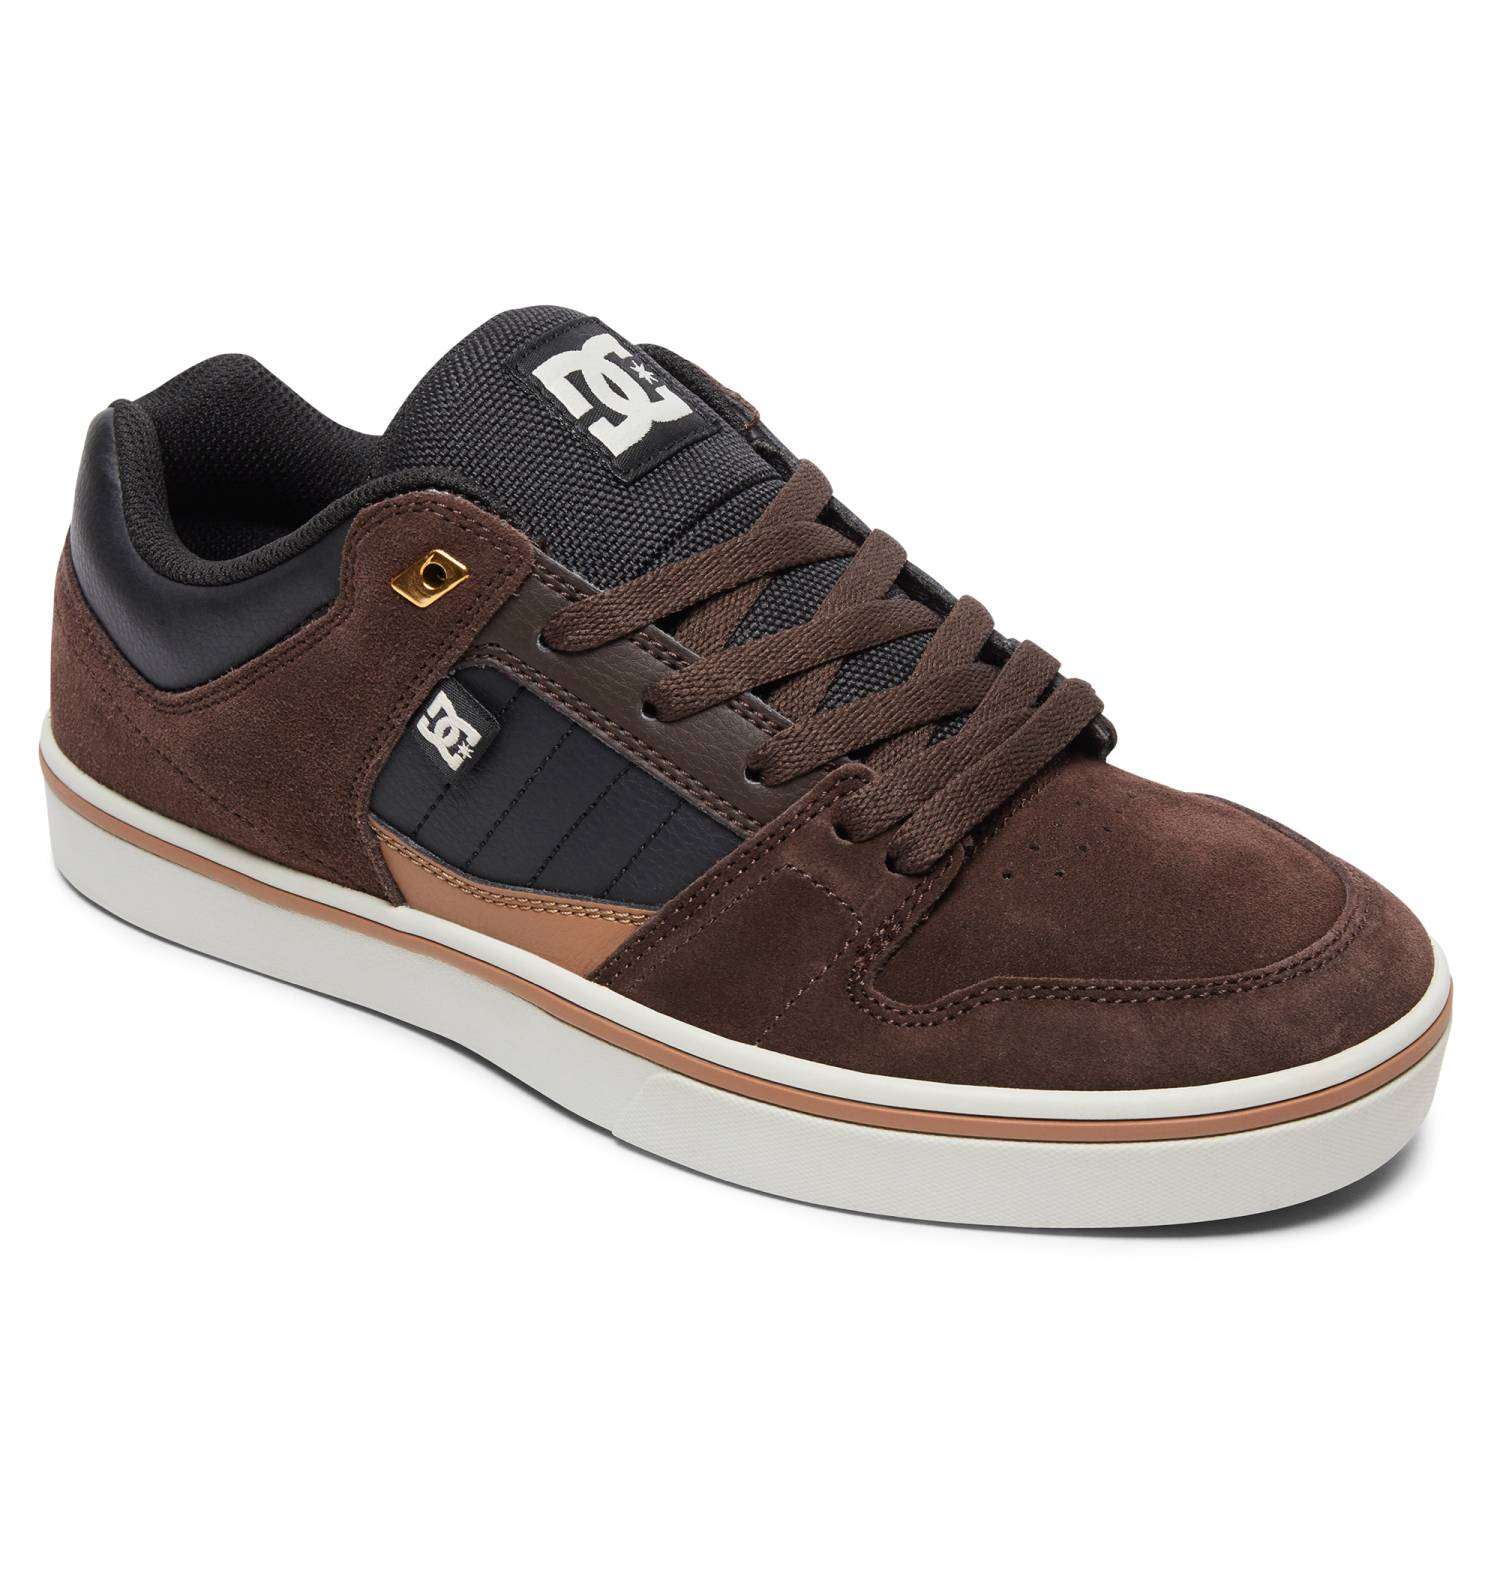 DC Shoes Course 2 SE braun Brown Combo Schuhe Low-Cut Sneaker Skateschuhe